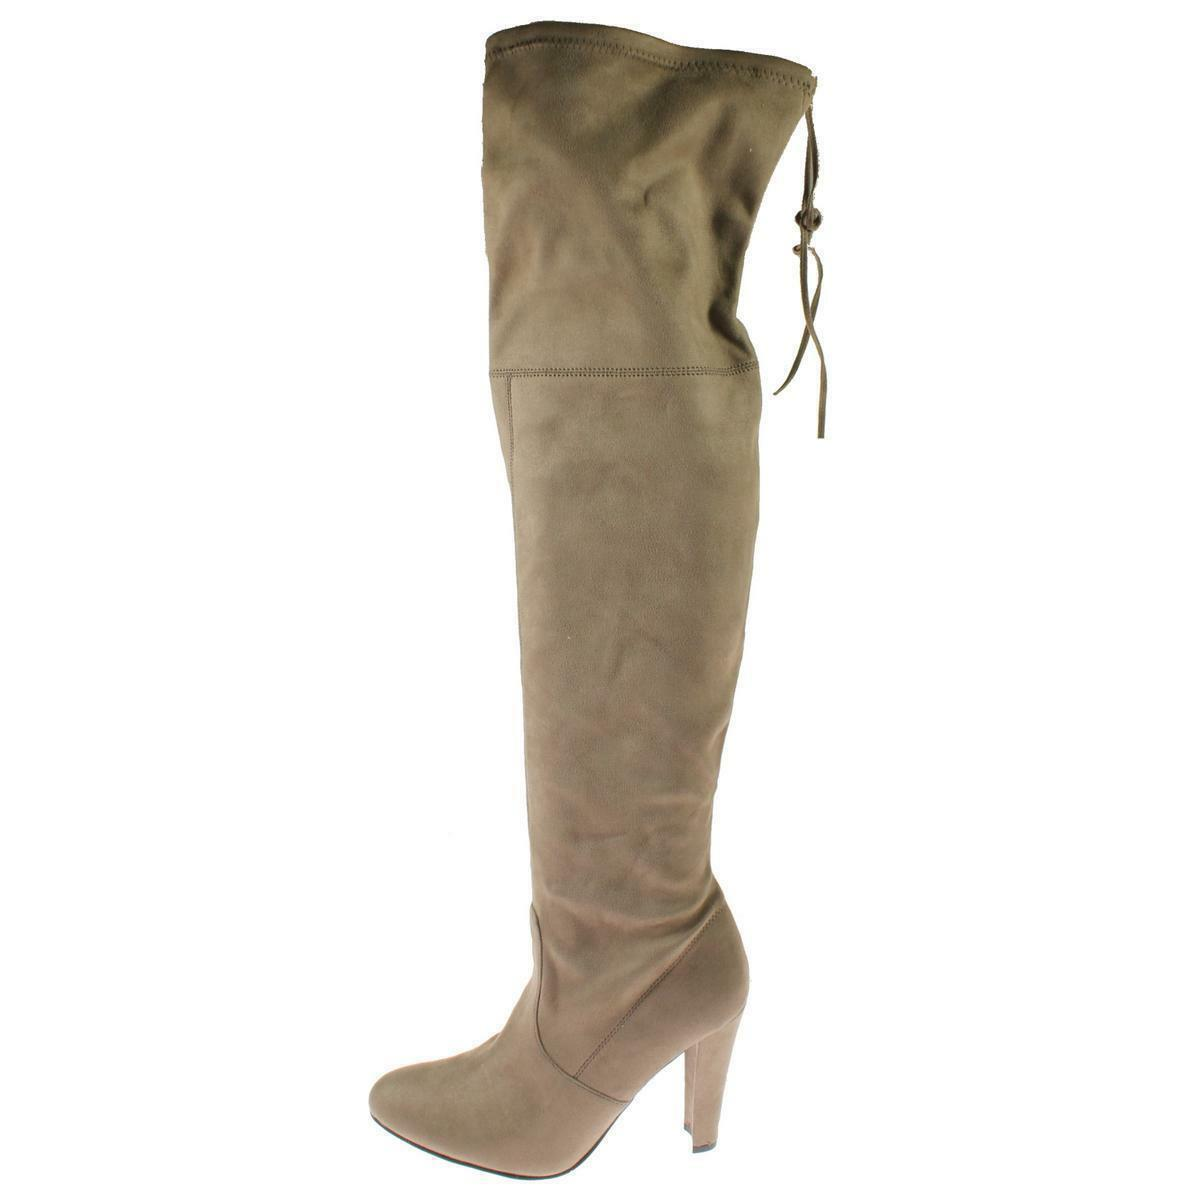 Steve Madden Gorgeous 8 Taupe Beige Suede Fabric Over Knee Knee Knee Boots Block Heel NEW 86017a